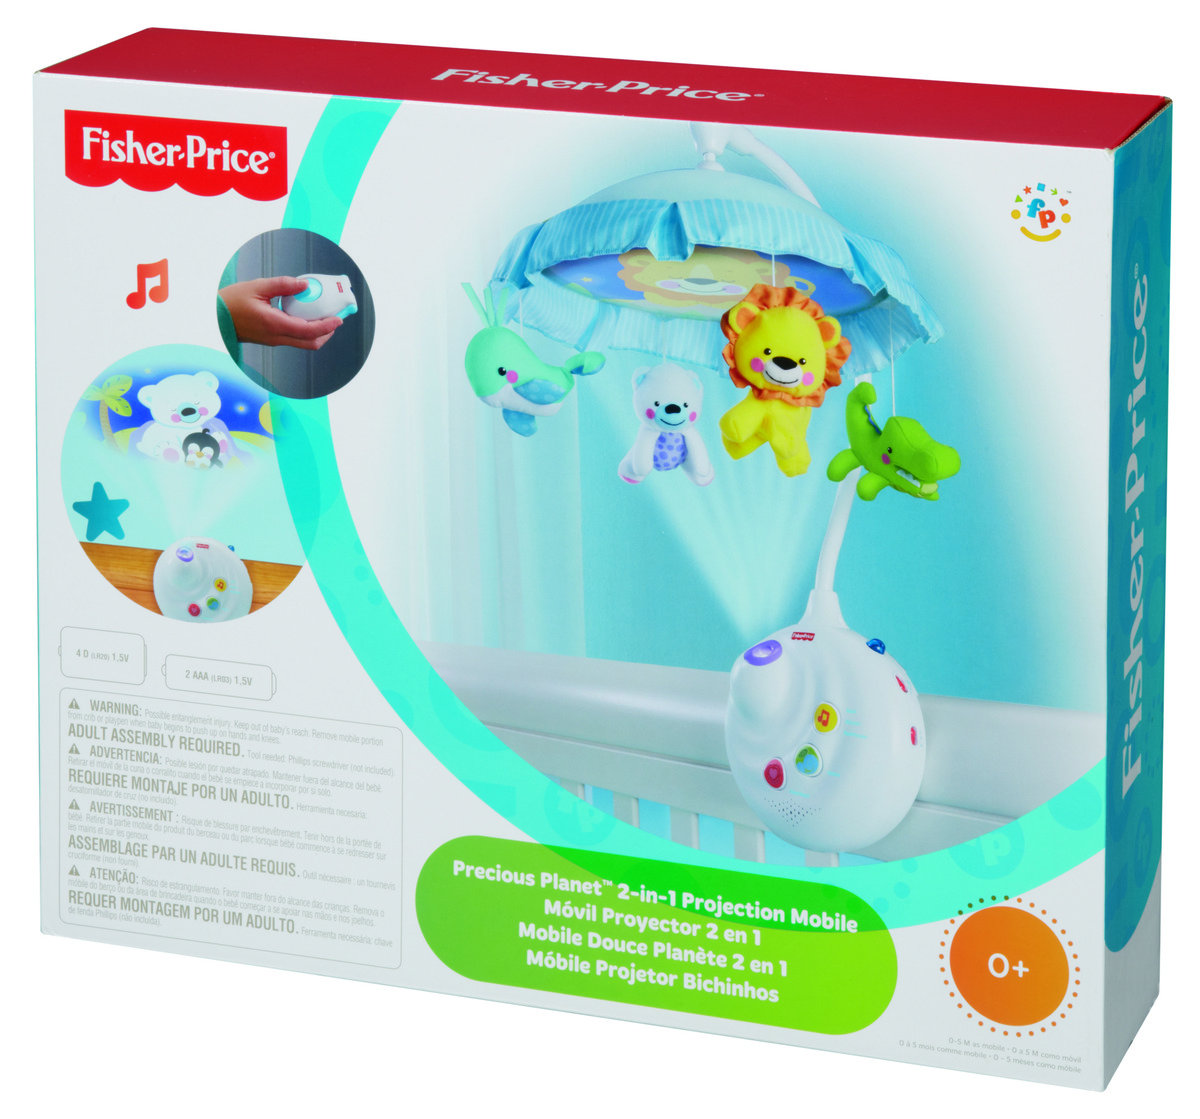 121768610699d Precious Planet 2-in-1 Projection Mobile